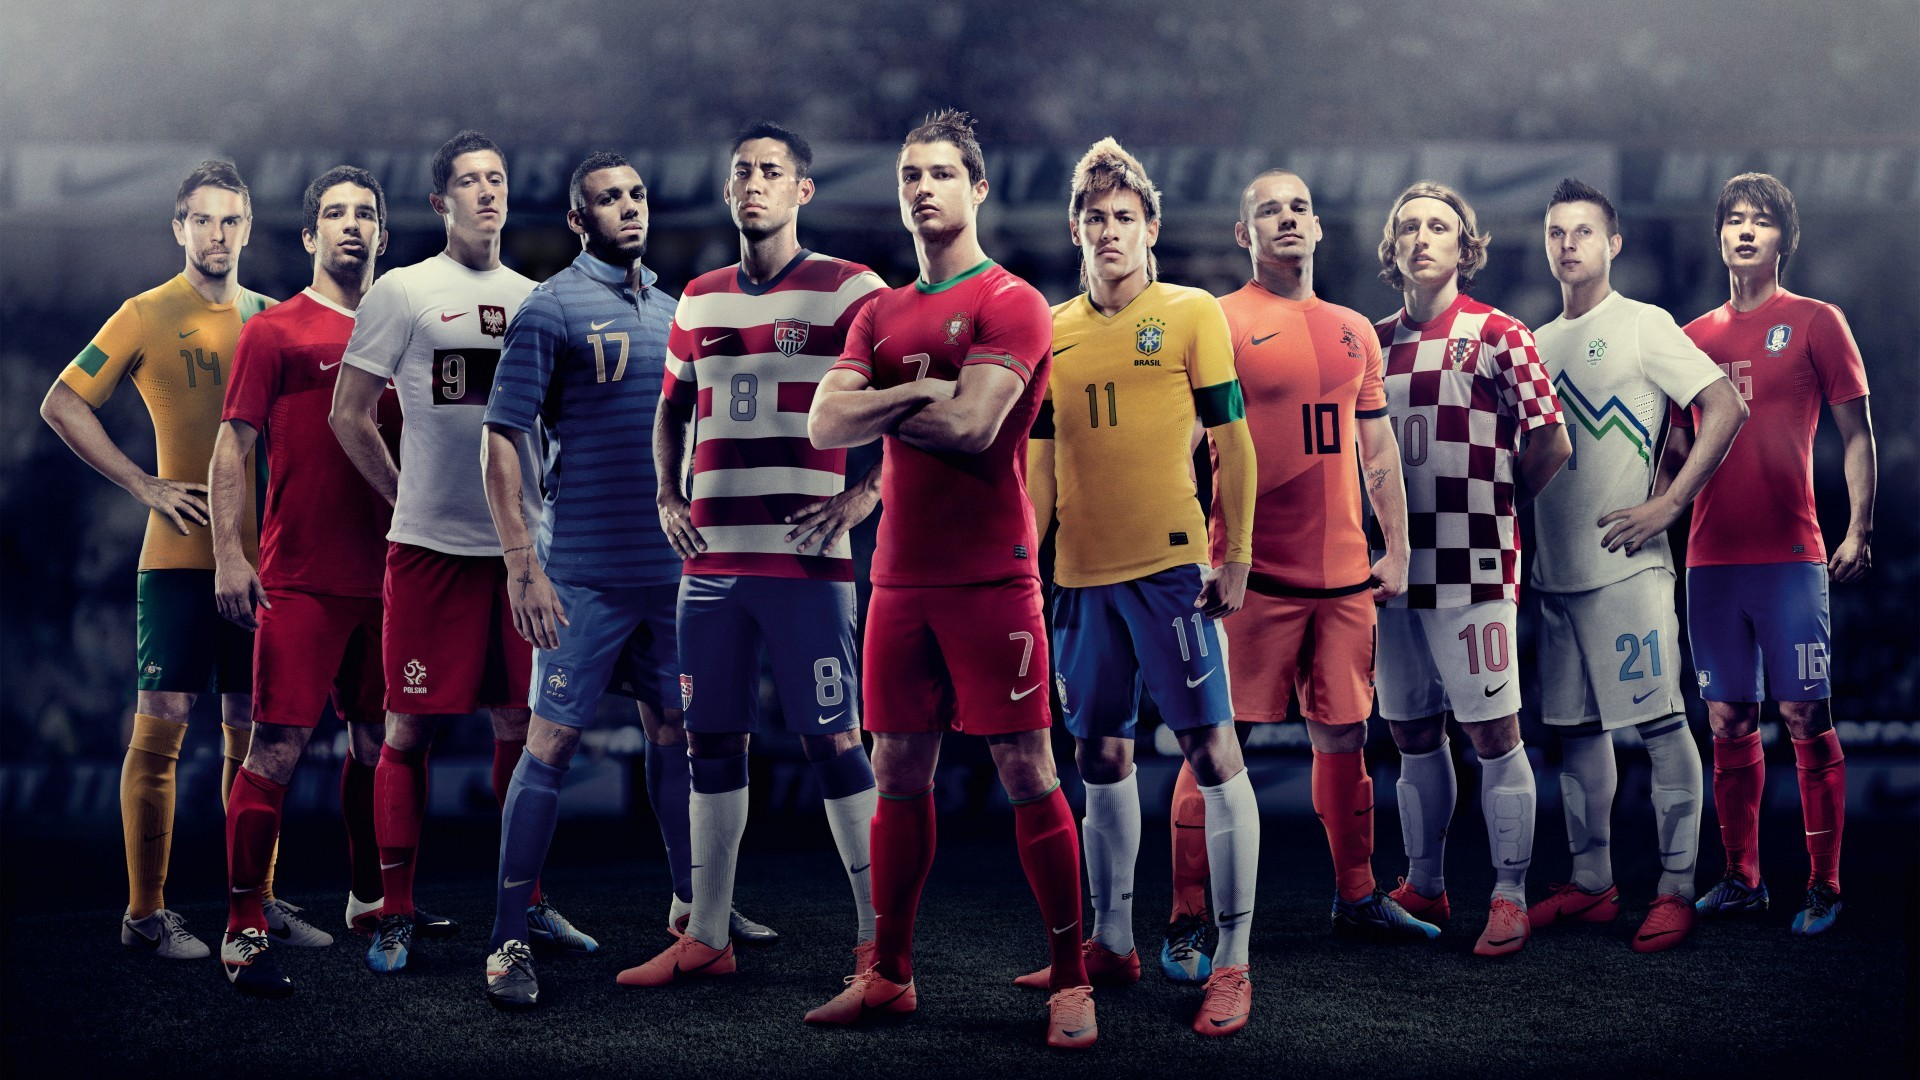 Wallpaper Nike Football 57 Pictures